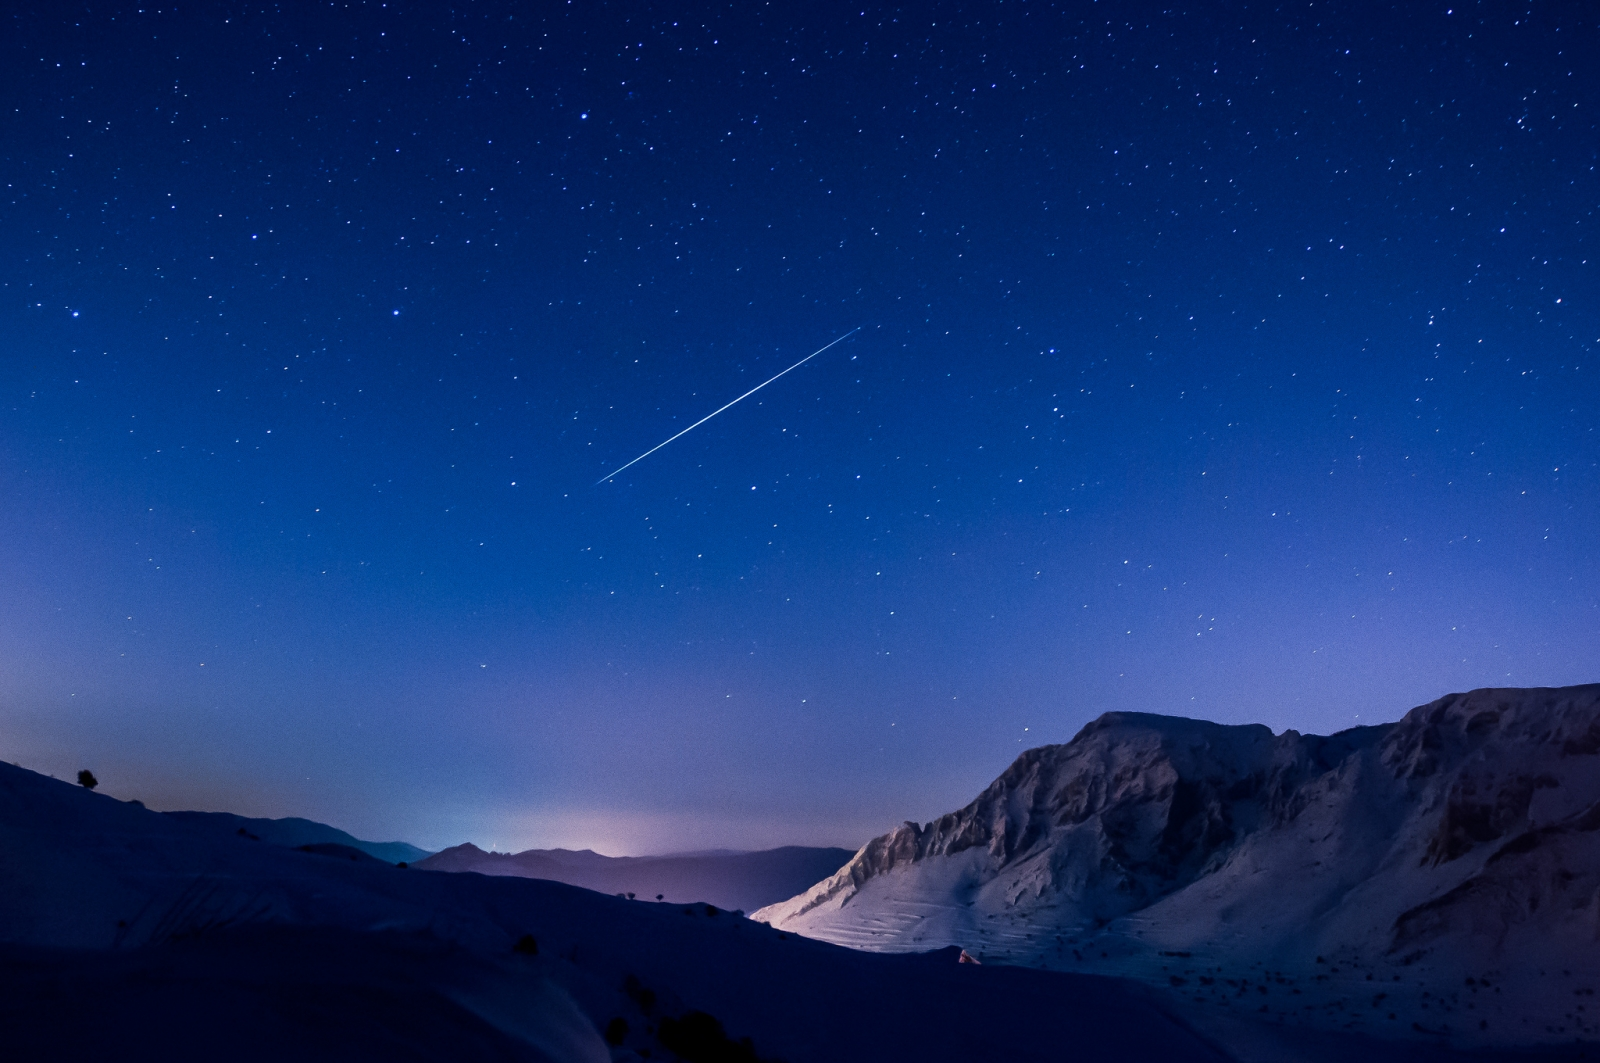 A single shooting star captured during the Geminids meteor shower in 2012